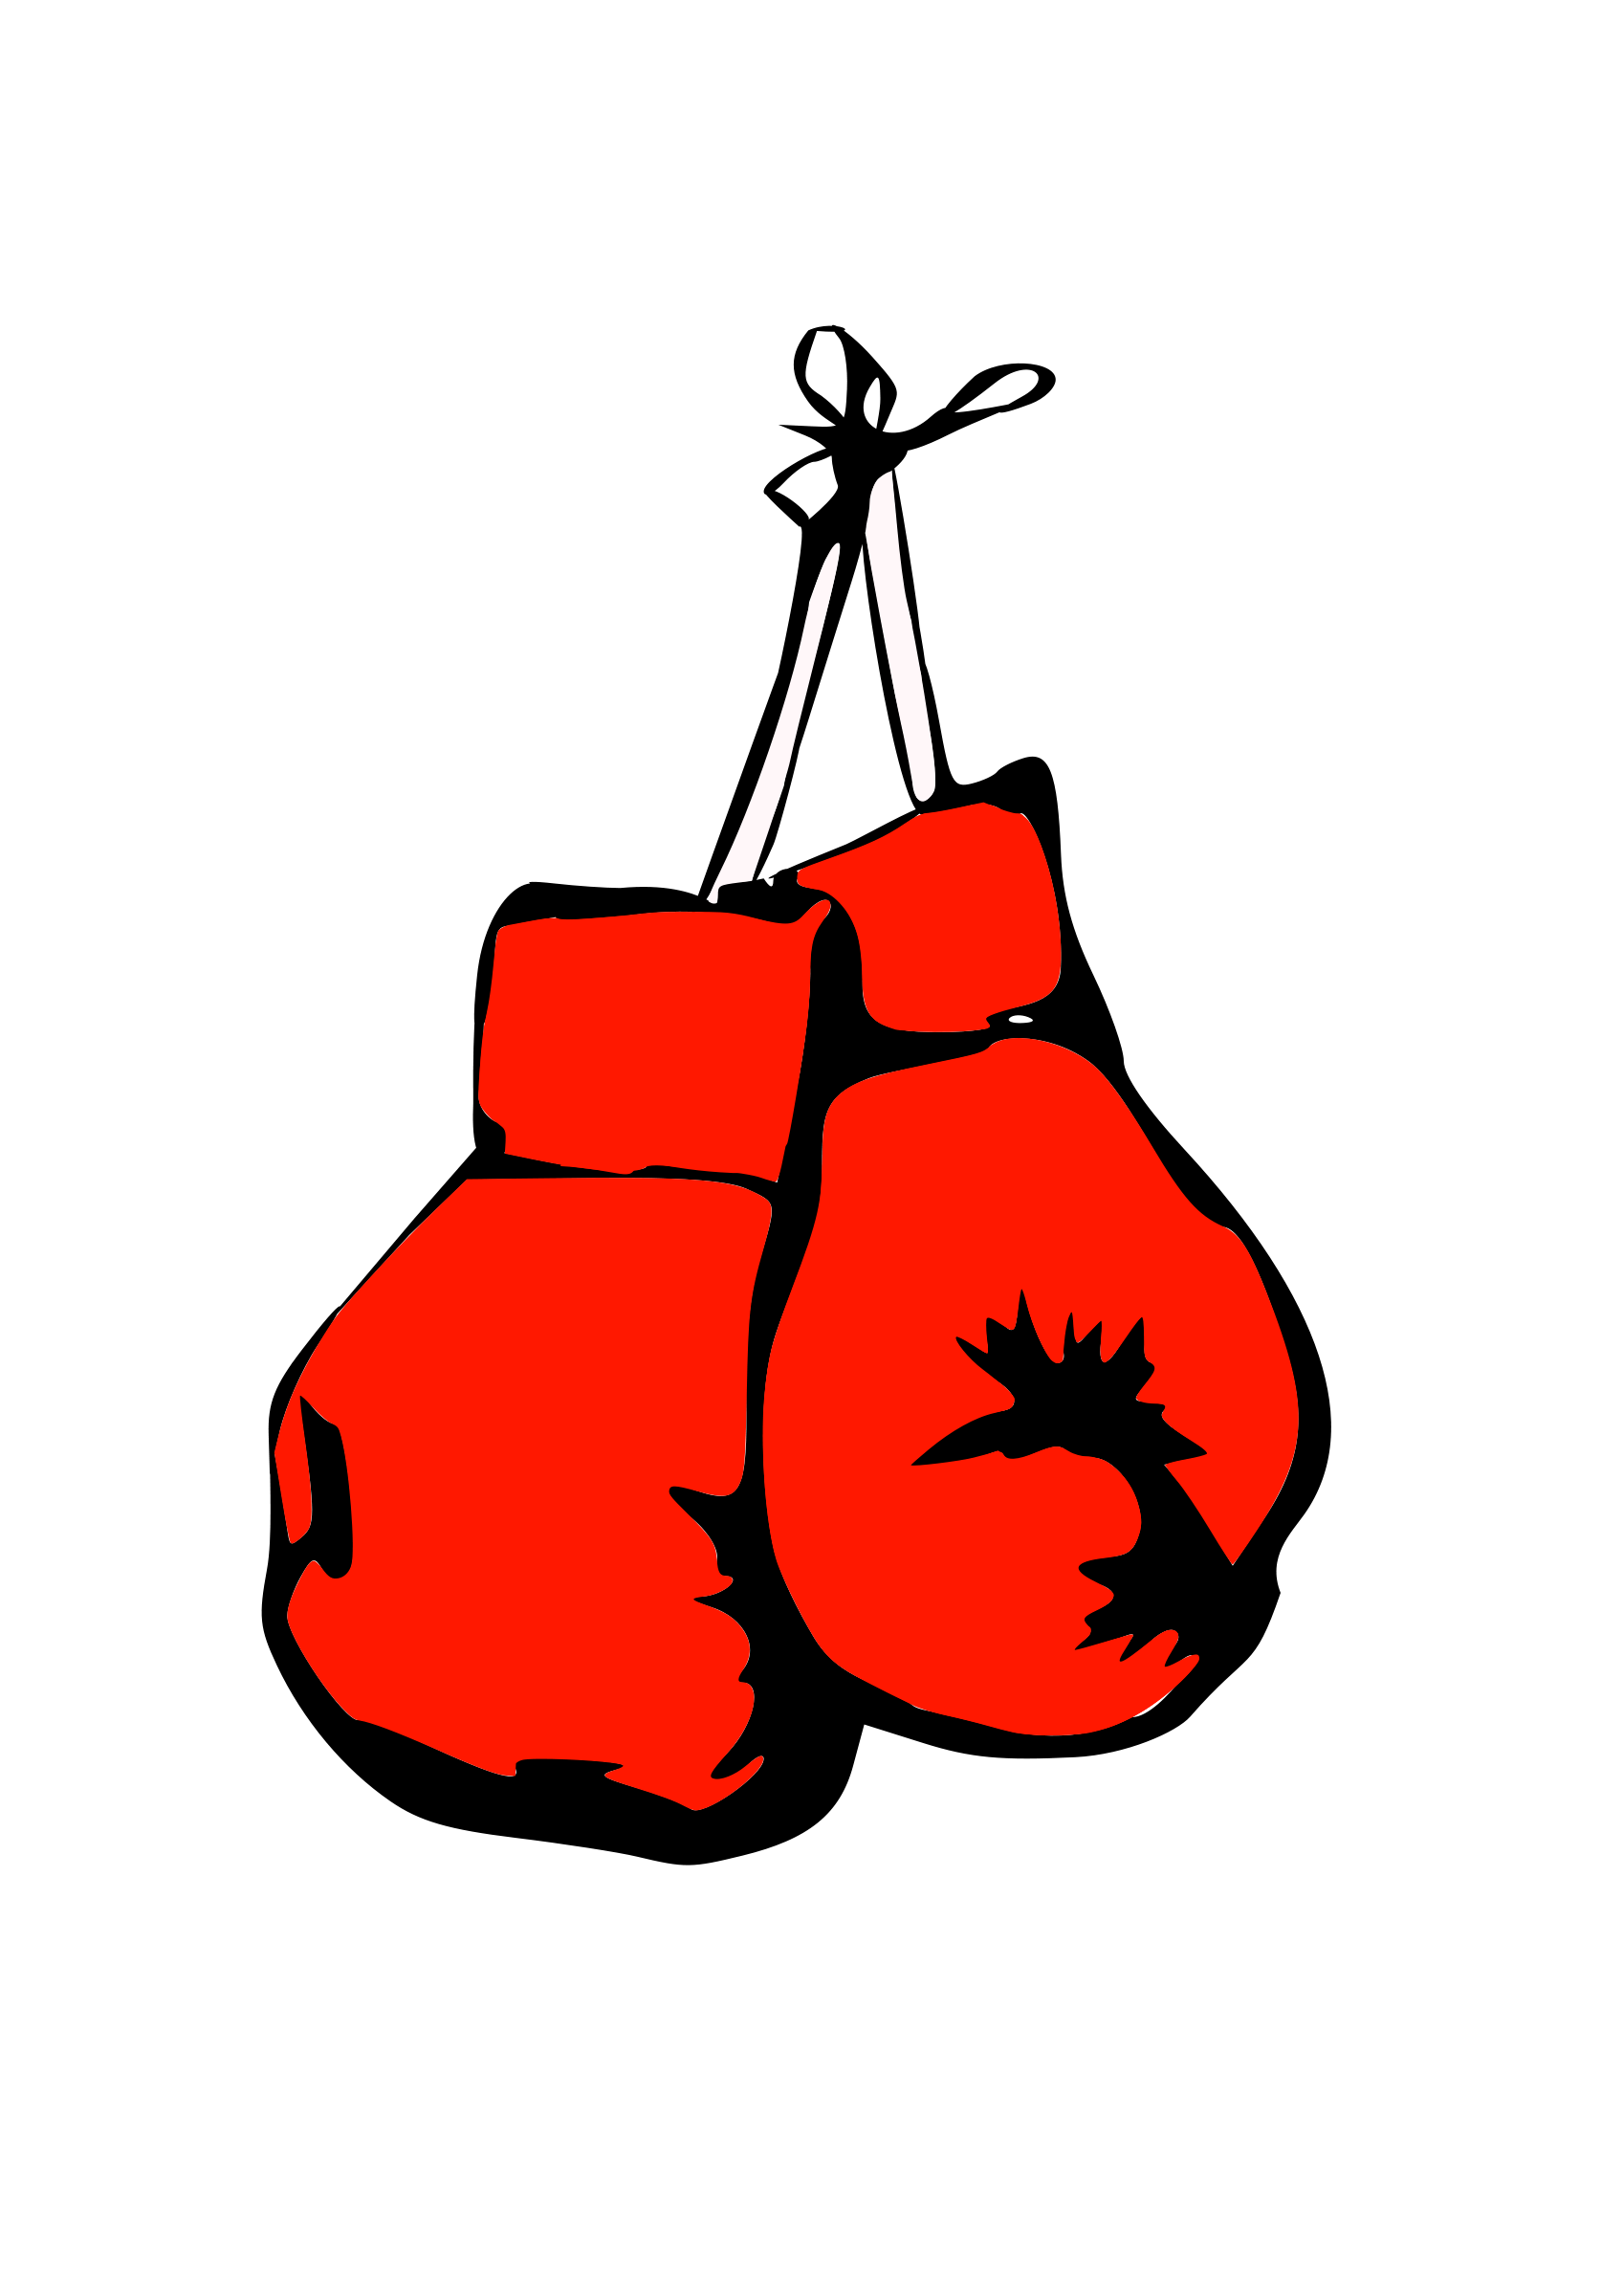 Vintage boxing gloves clipart free picture free library Free Boxing Gloves Pics, Download Free Clip Art, Free Clip ... picture free library